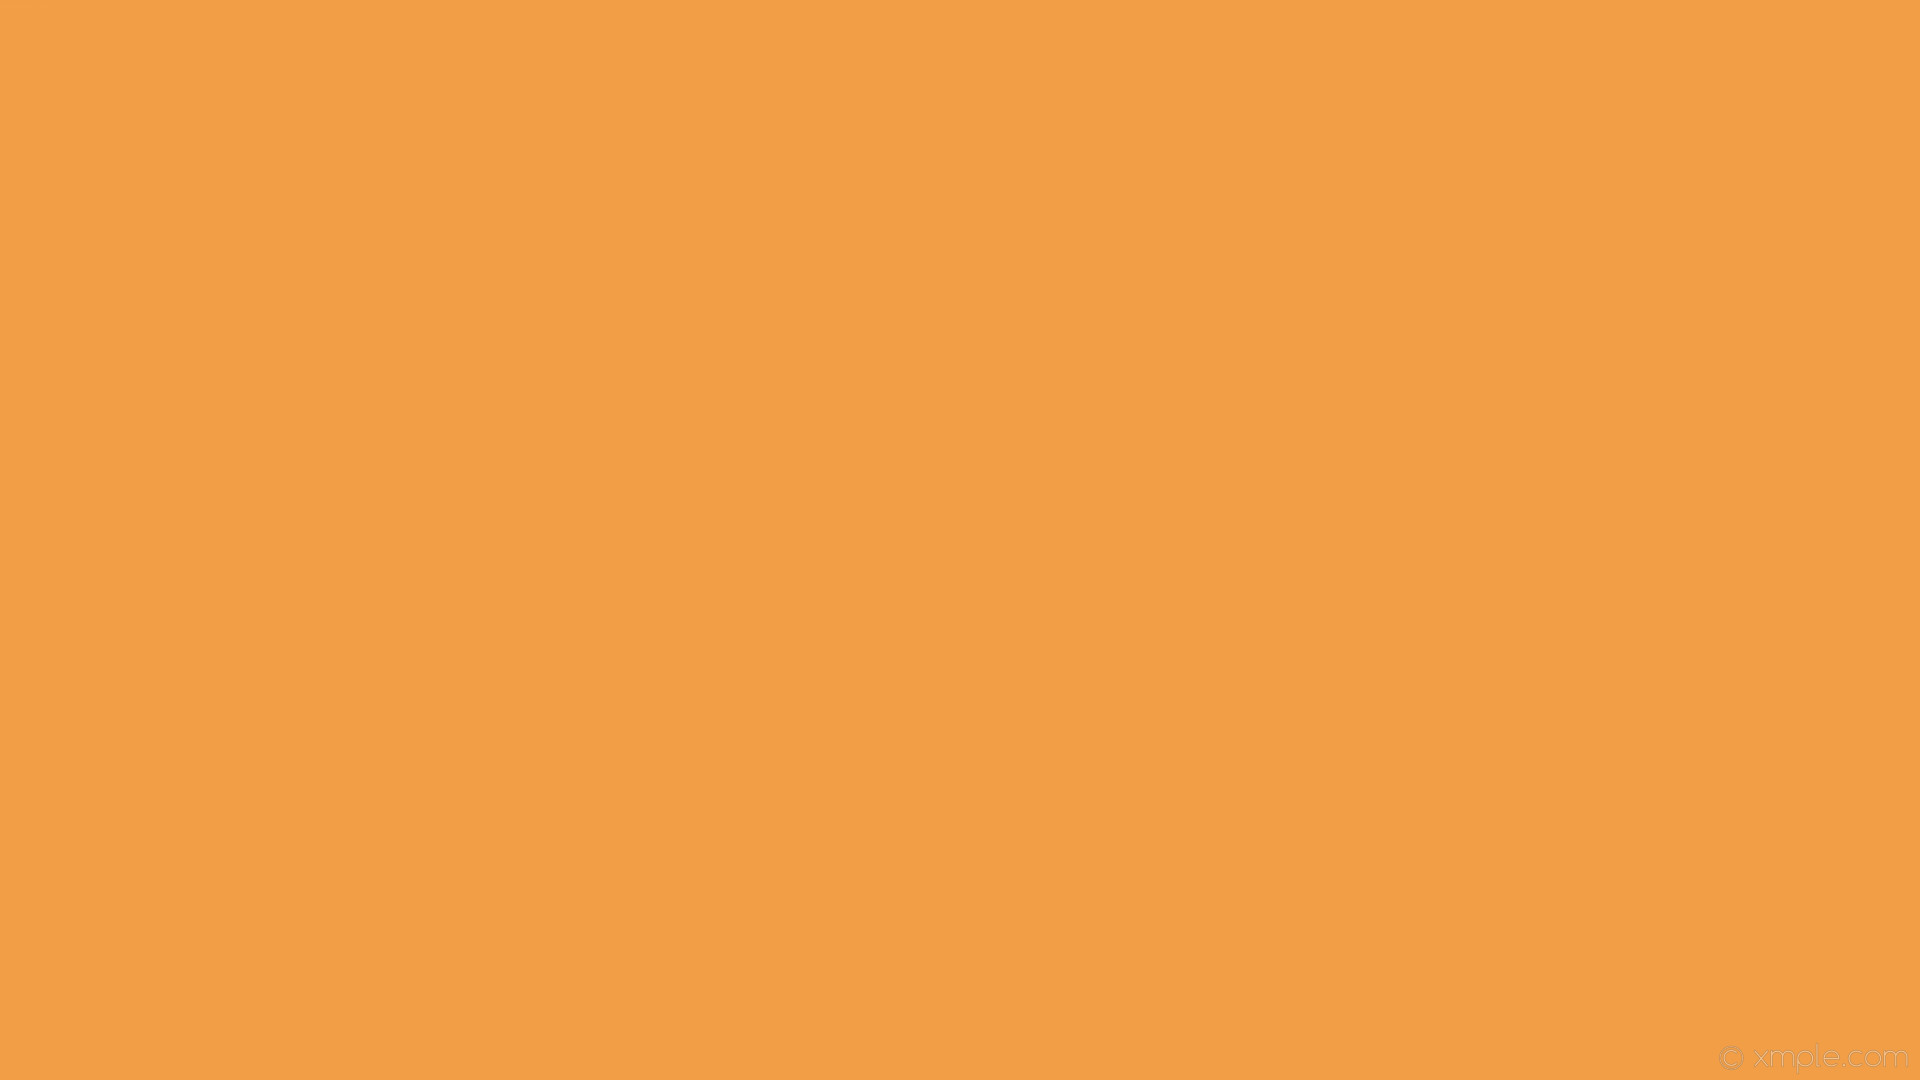 1920x1080 Wallpaper Single Orange Plain One Colour Solid Color F19e46